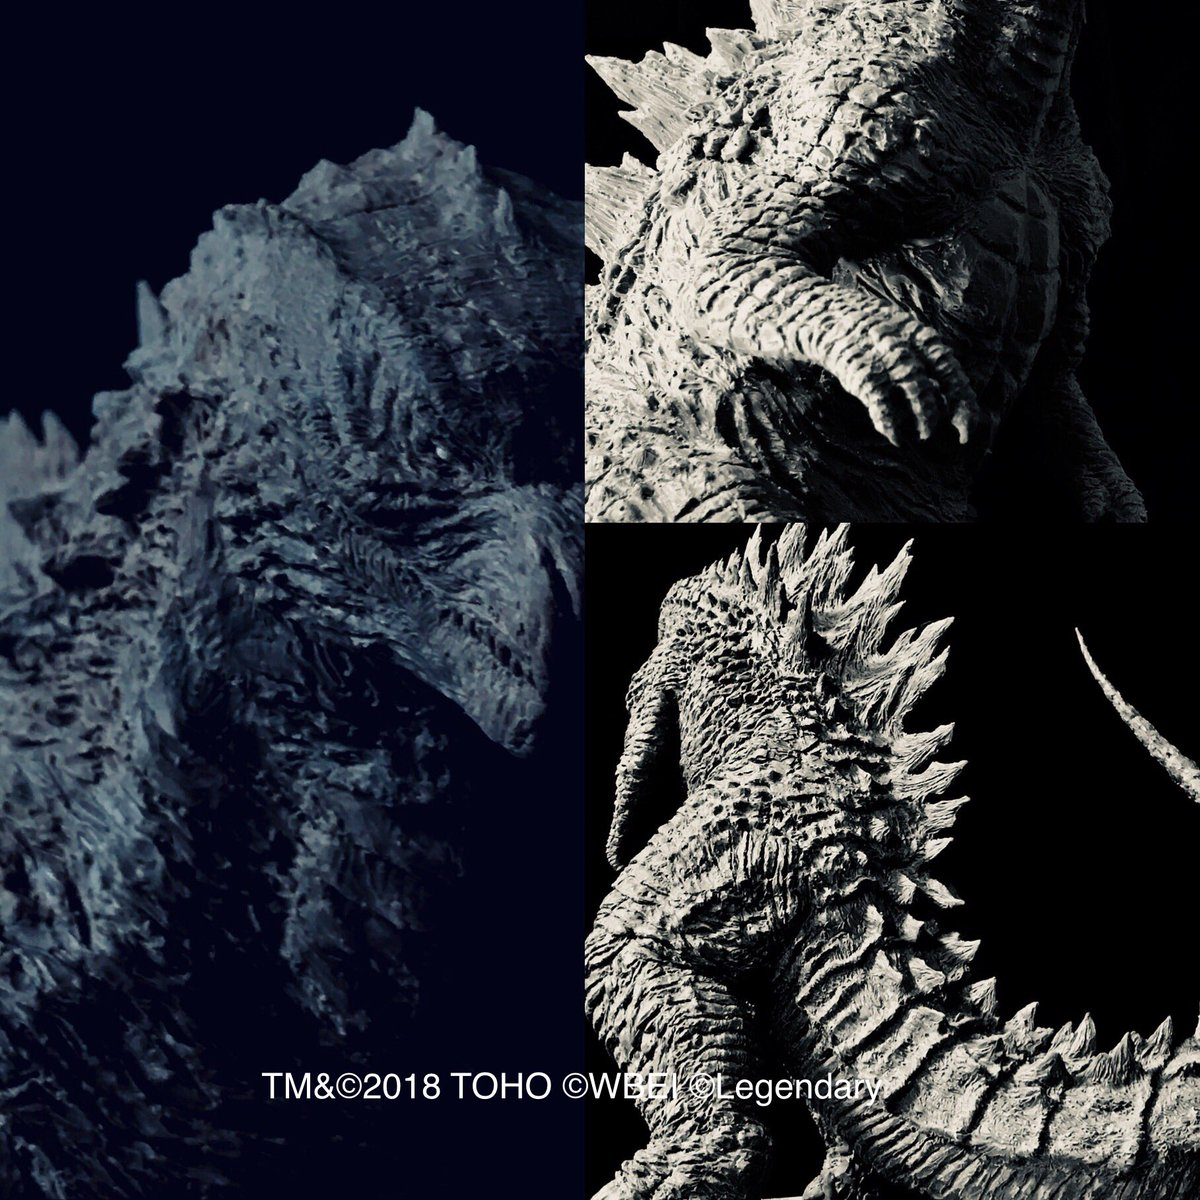 Godzill 2019: Godzilla: King Of The Monsters